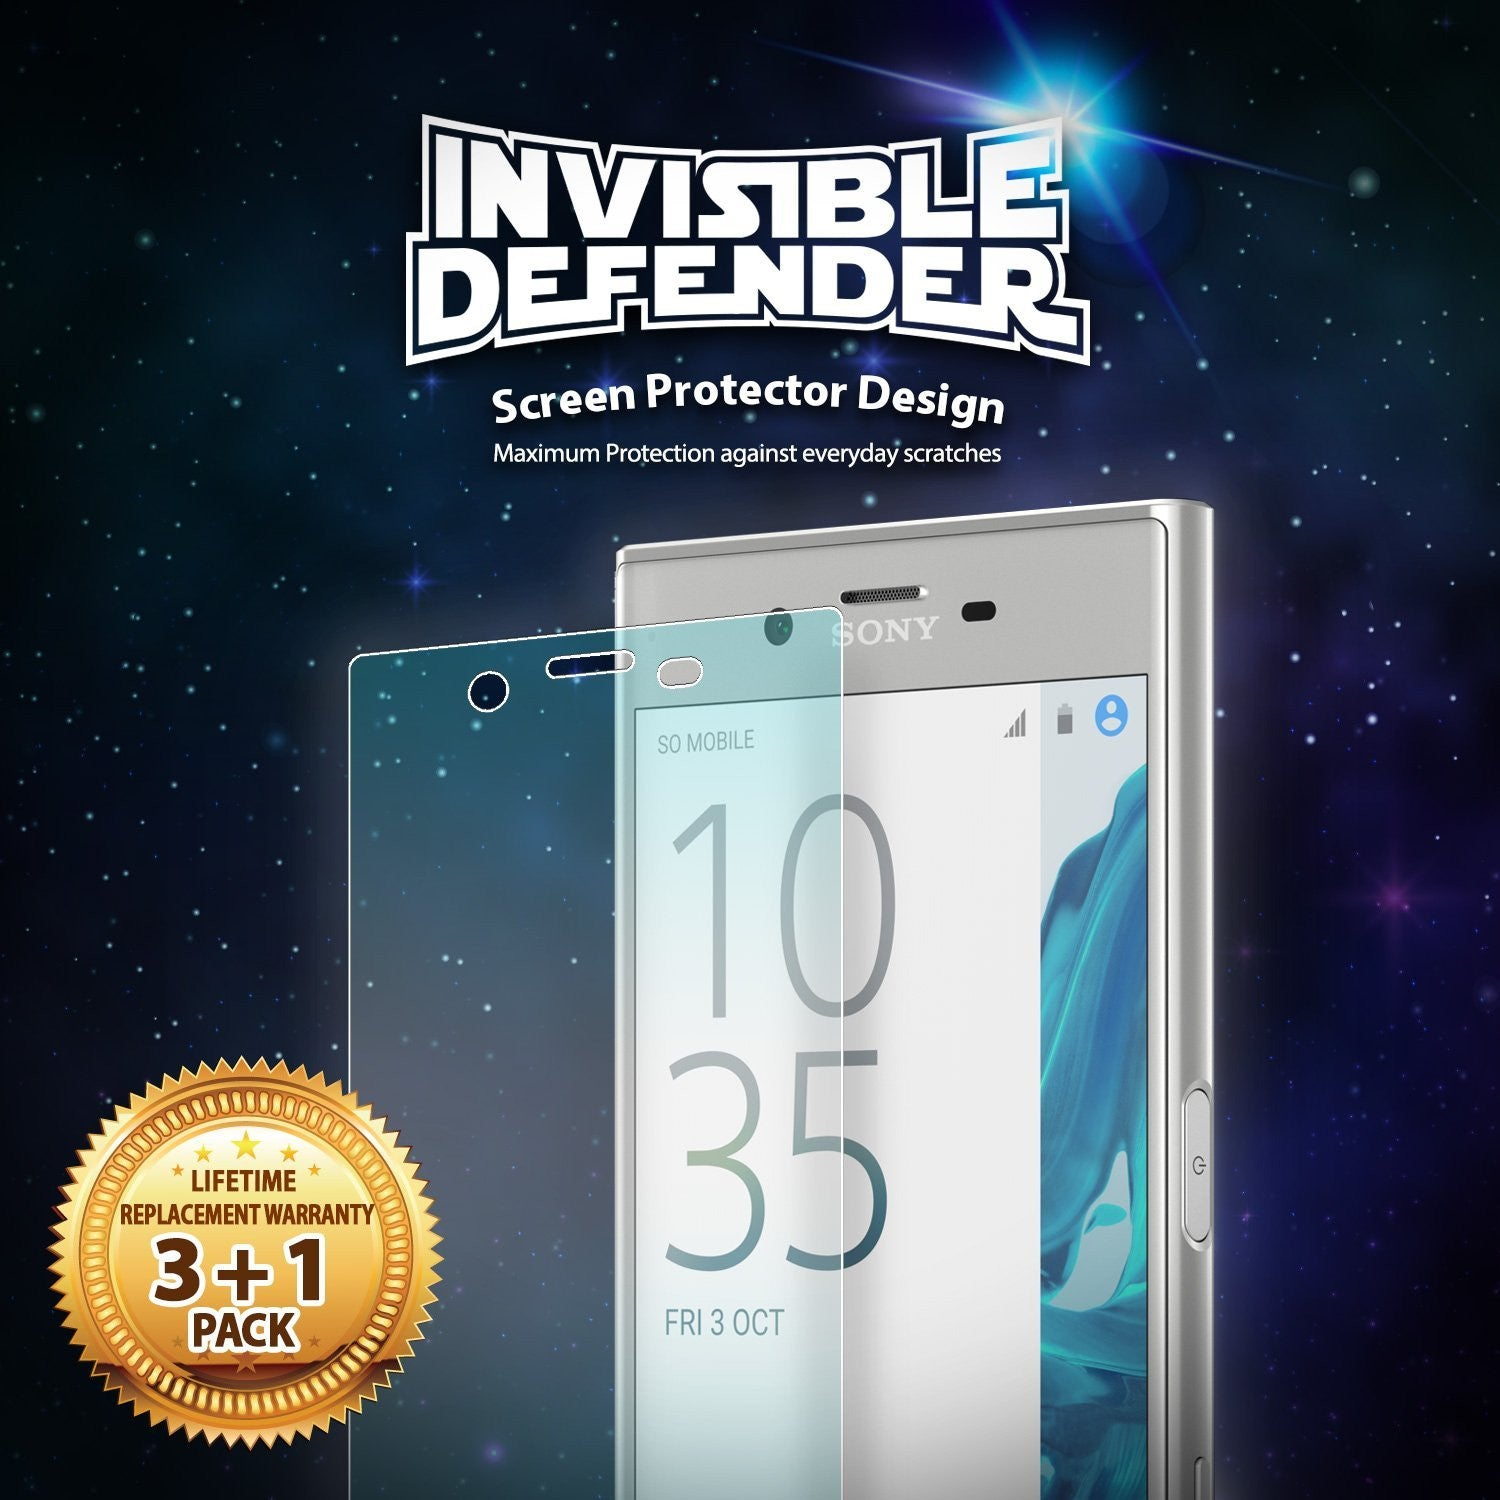 sony xperia xz ringke invisible defender 3 1 pack screen protector